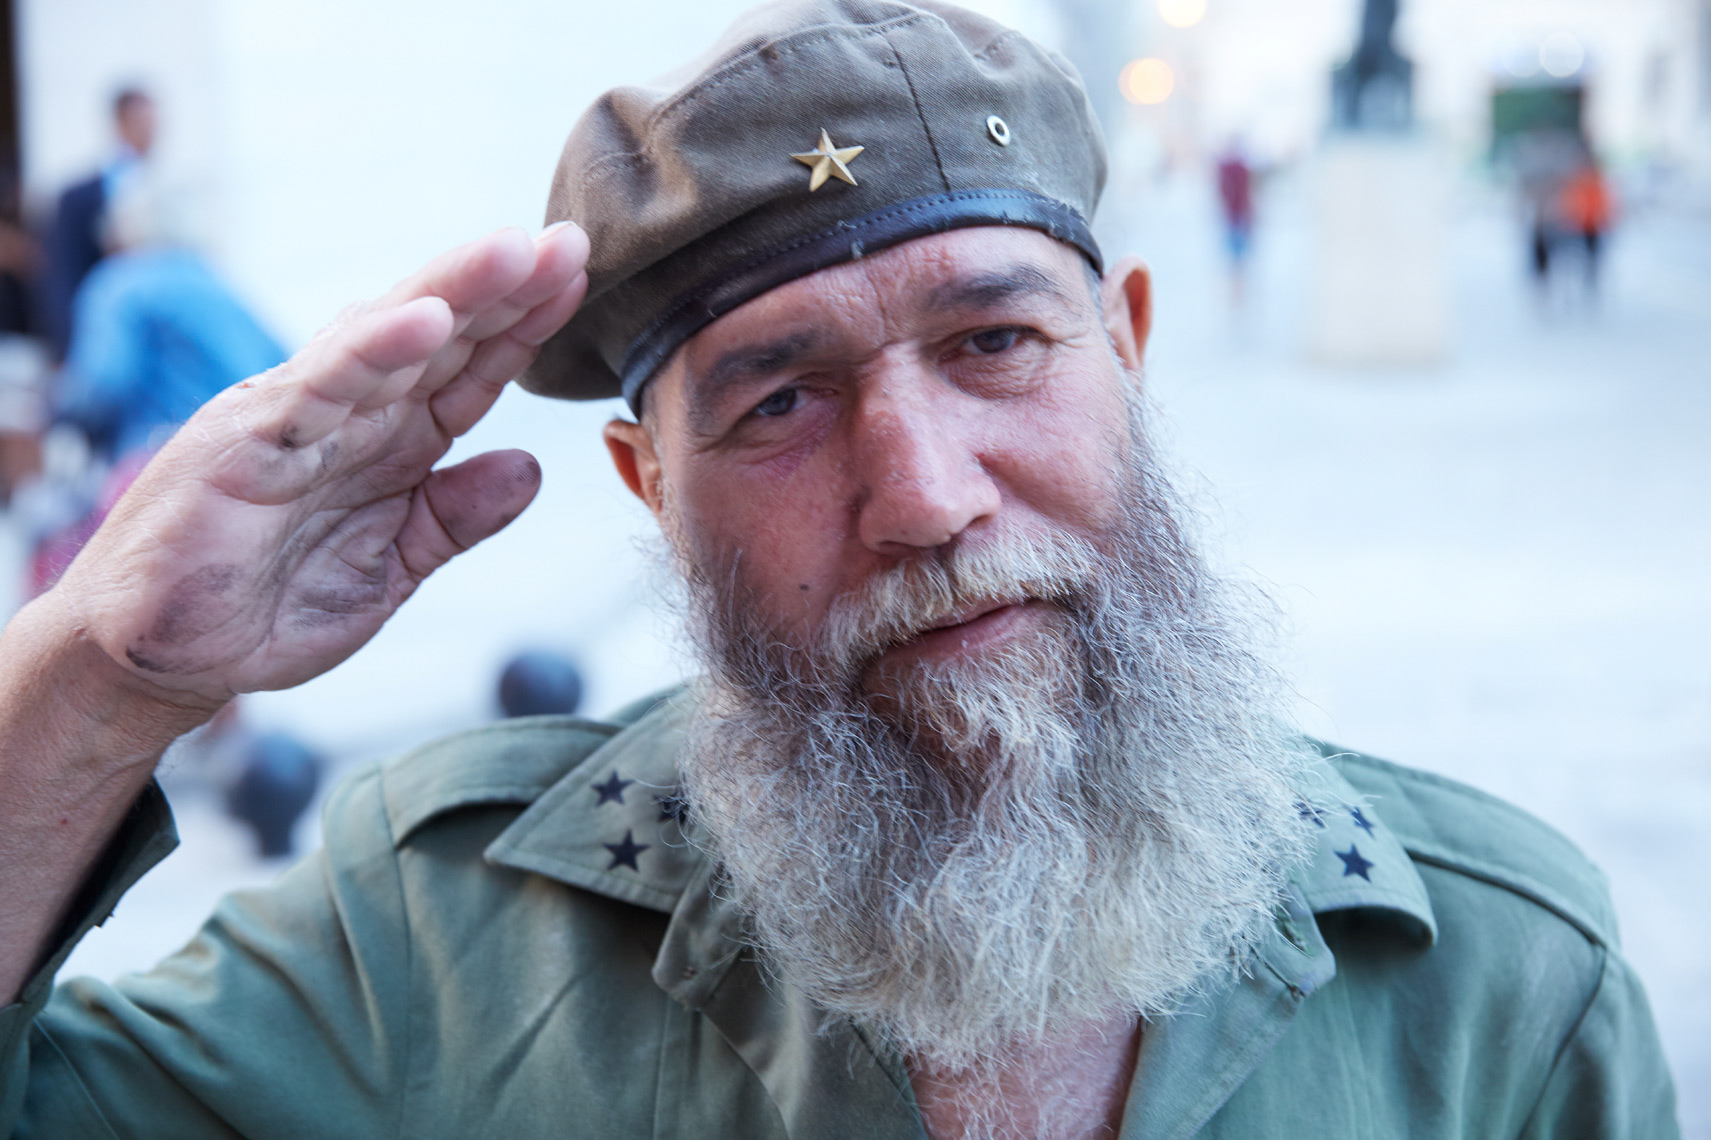 old man wearing Fidel Castro hat saluting camera